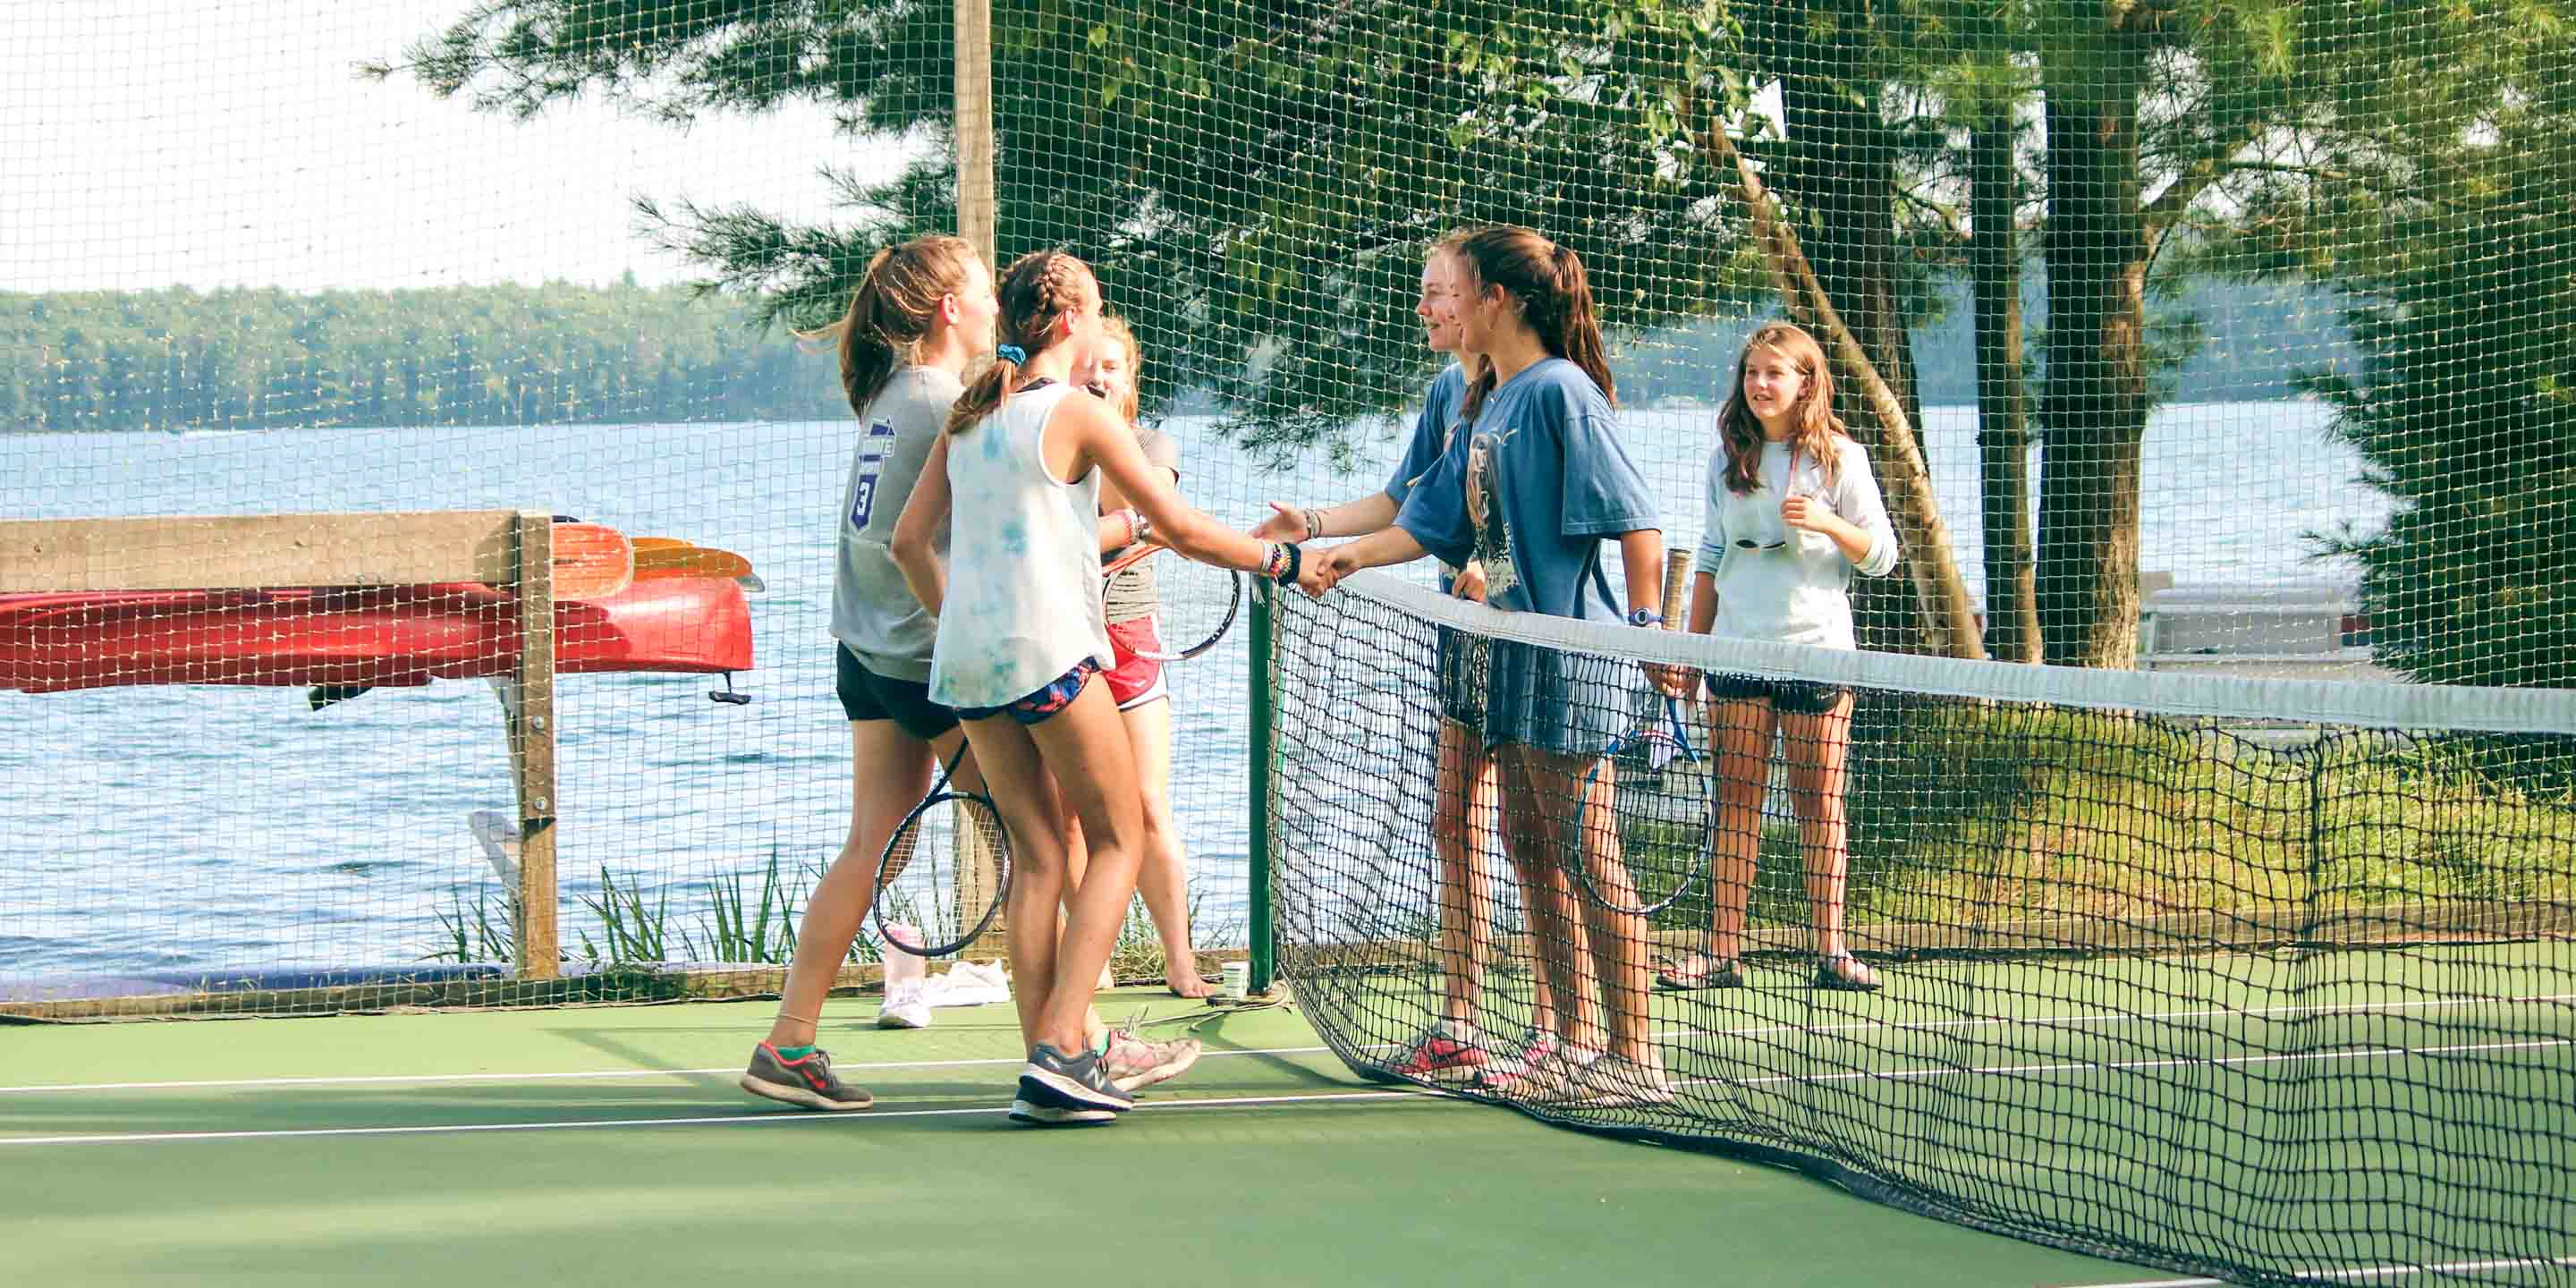 Campers shake hands after tennis match